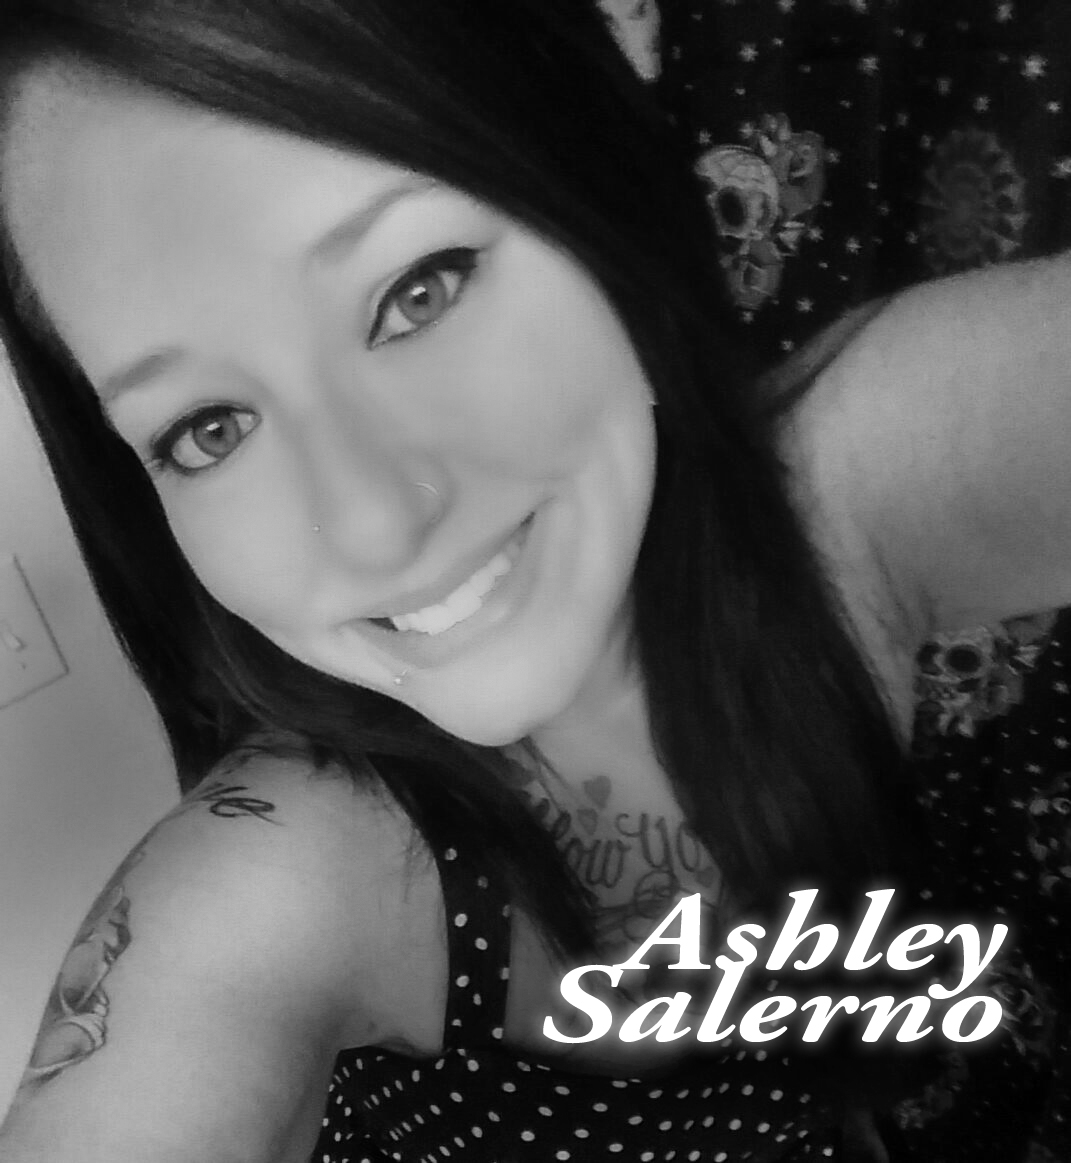 Ashley Salerno